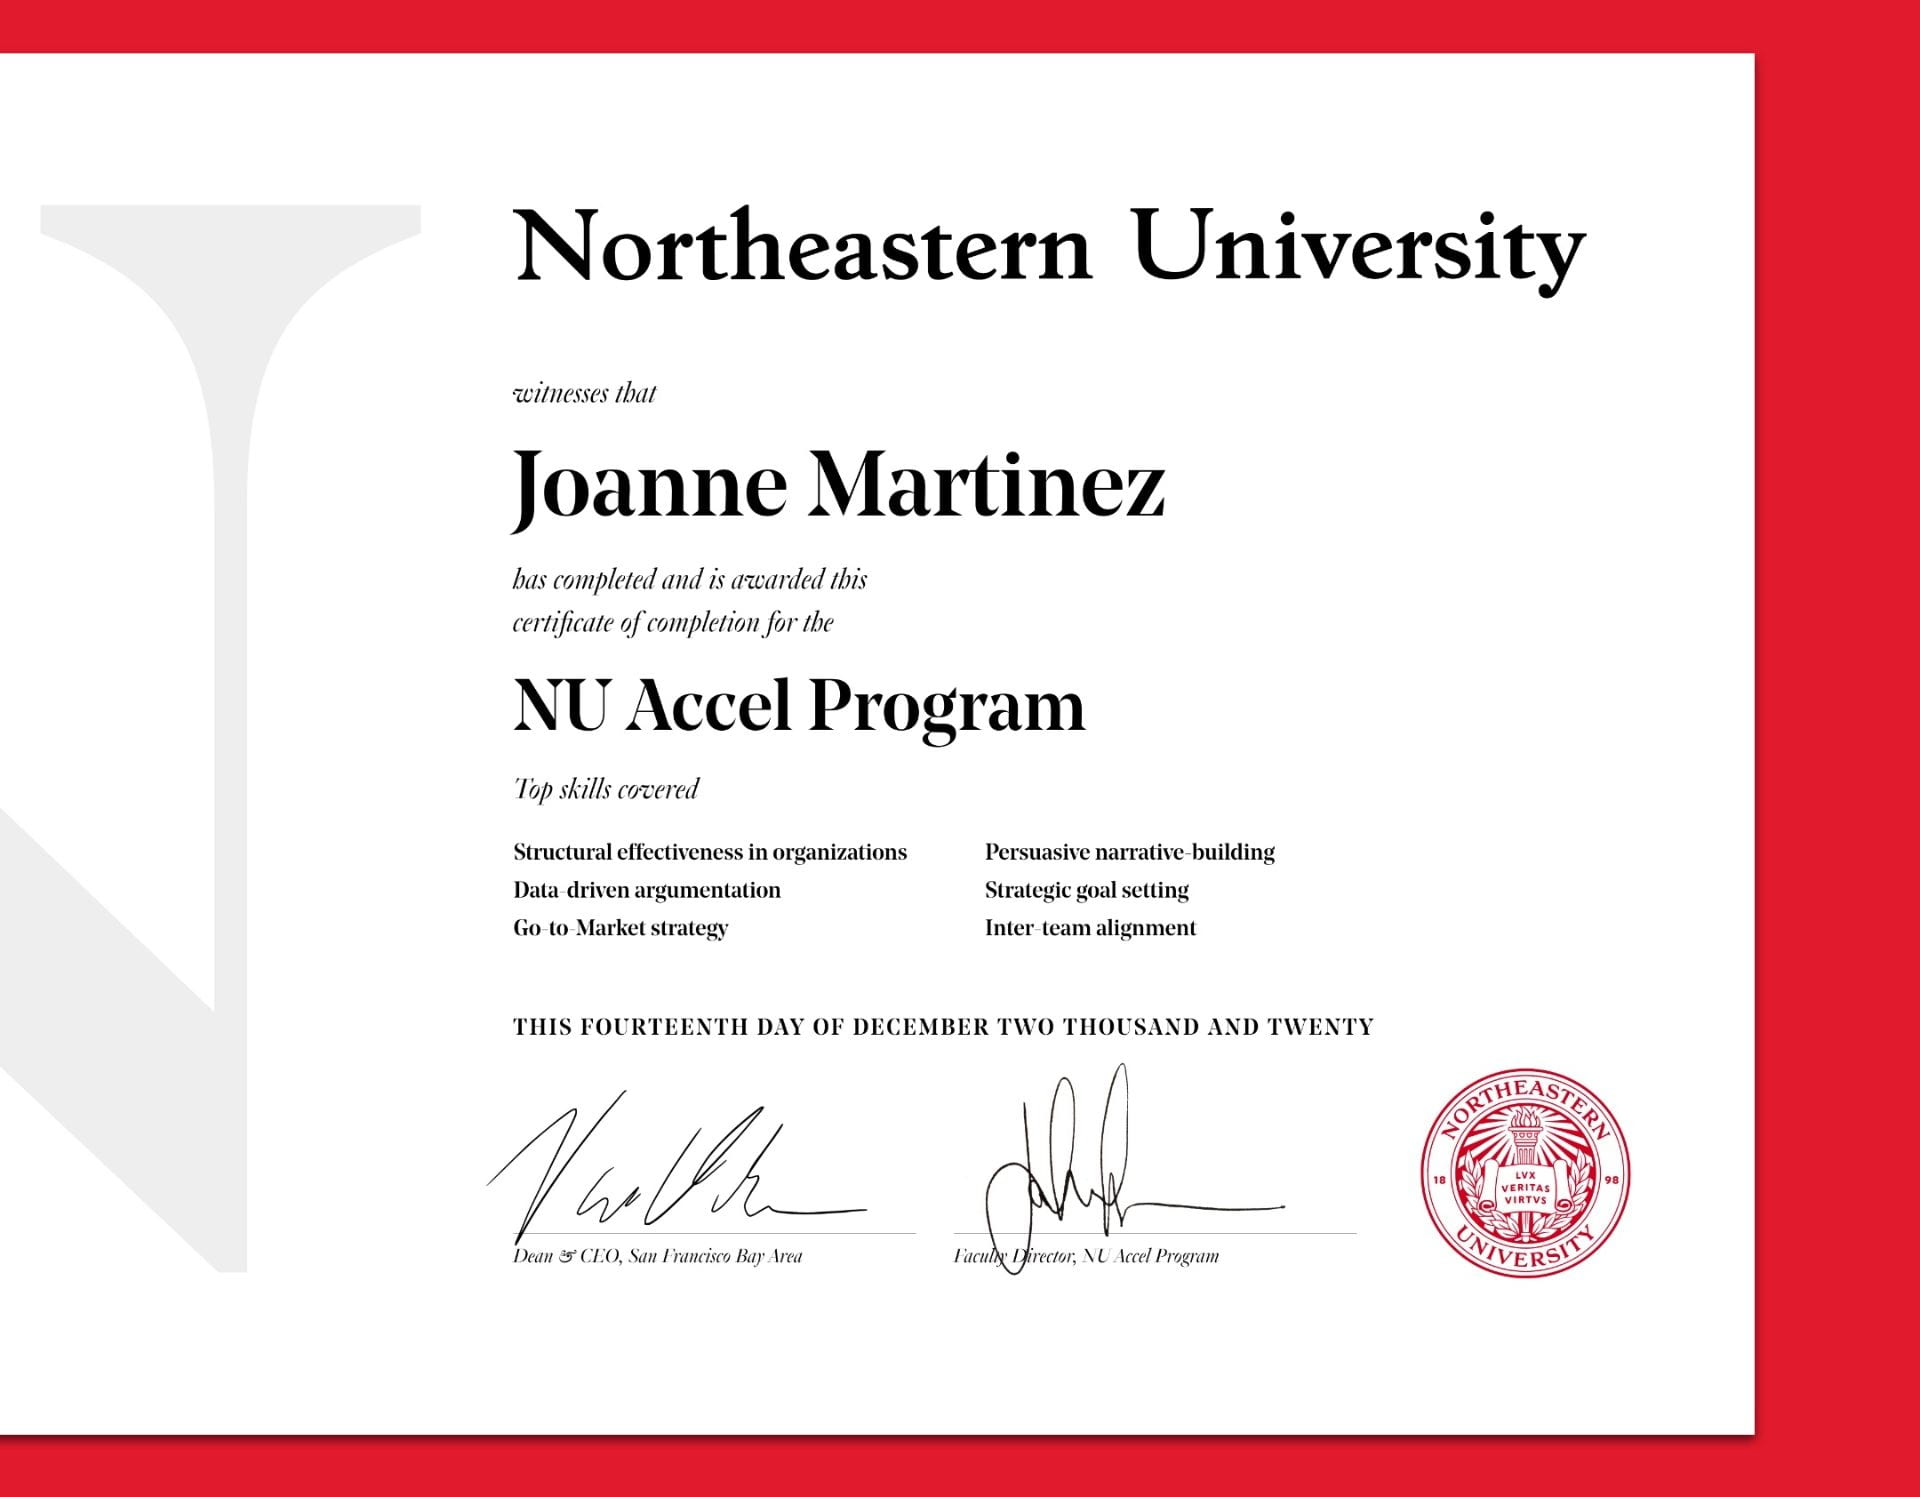 Image of the NU Accel certificate from Northeastern University